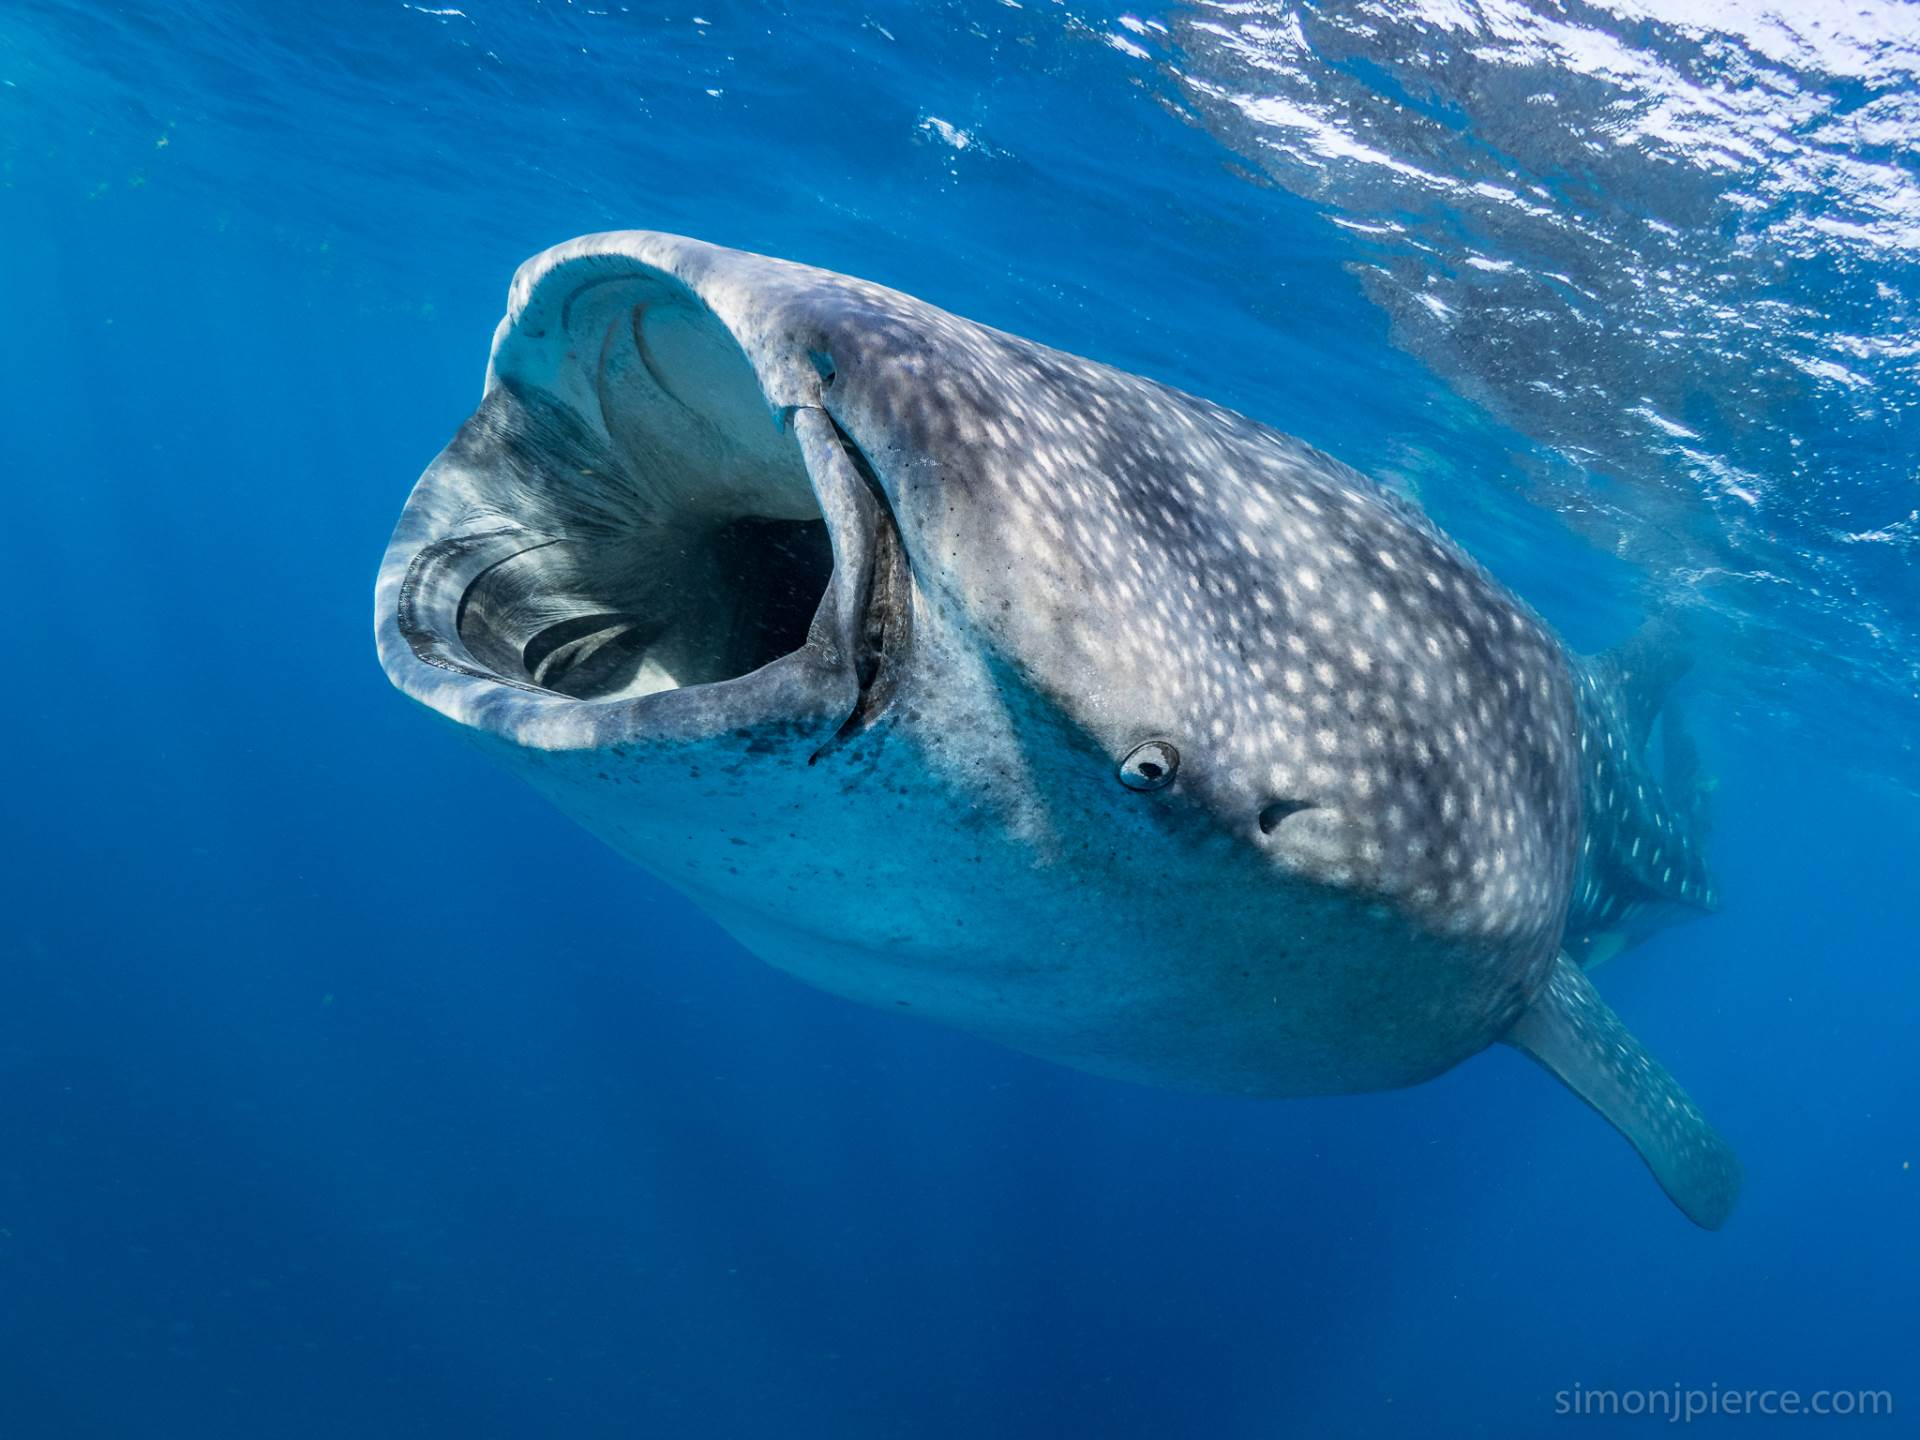 """My favourite fish! And the basis of my job :). Lovely clear blue water in the """"afuera"""" offshore whale shark area off Isla Mujeres in Mexico."""